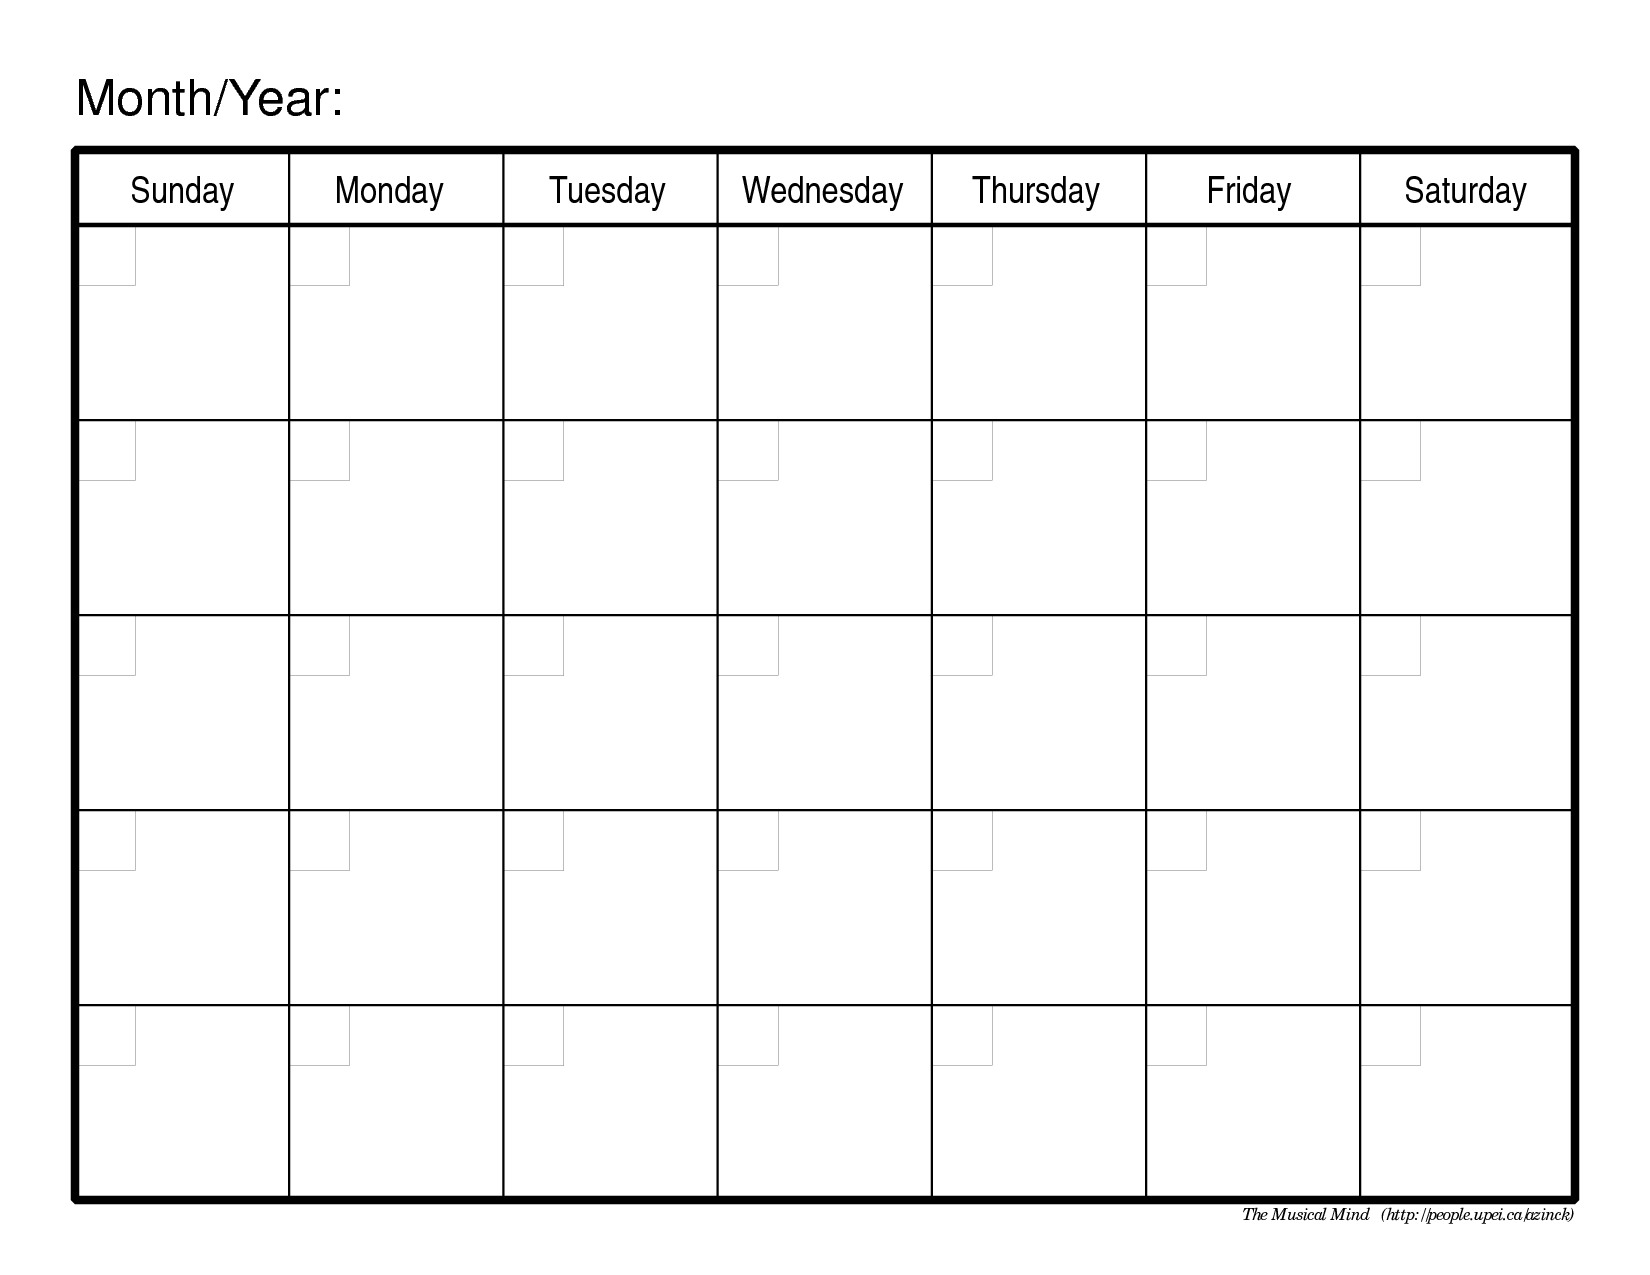 Monthly Calendar Template | Organizing | Pinterest | Monthly ...